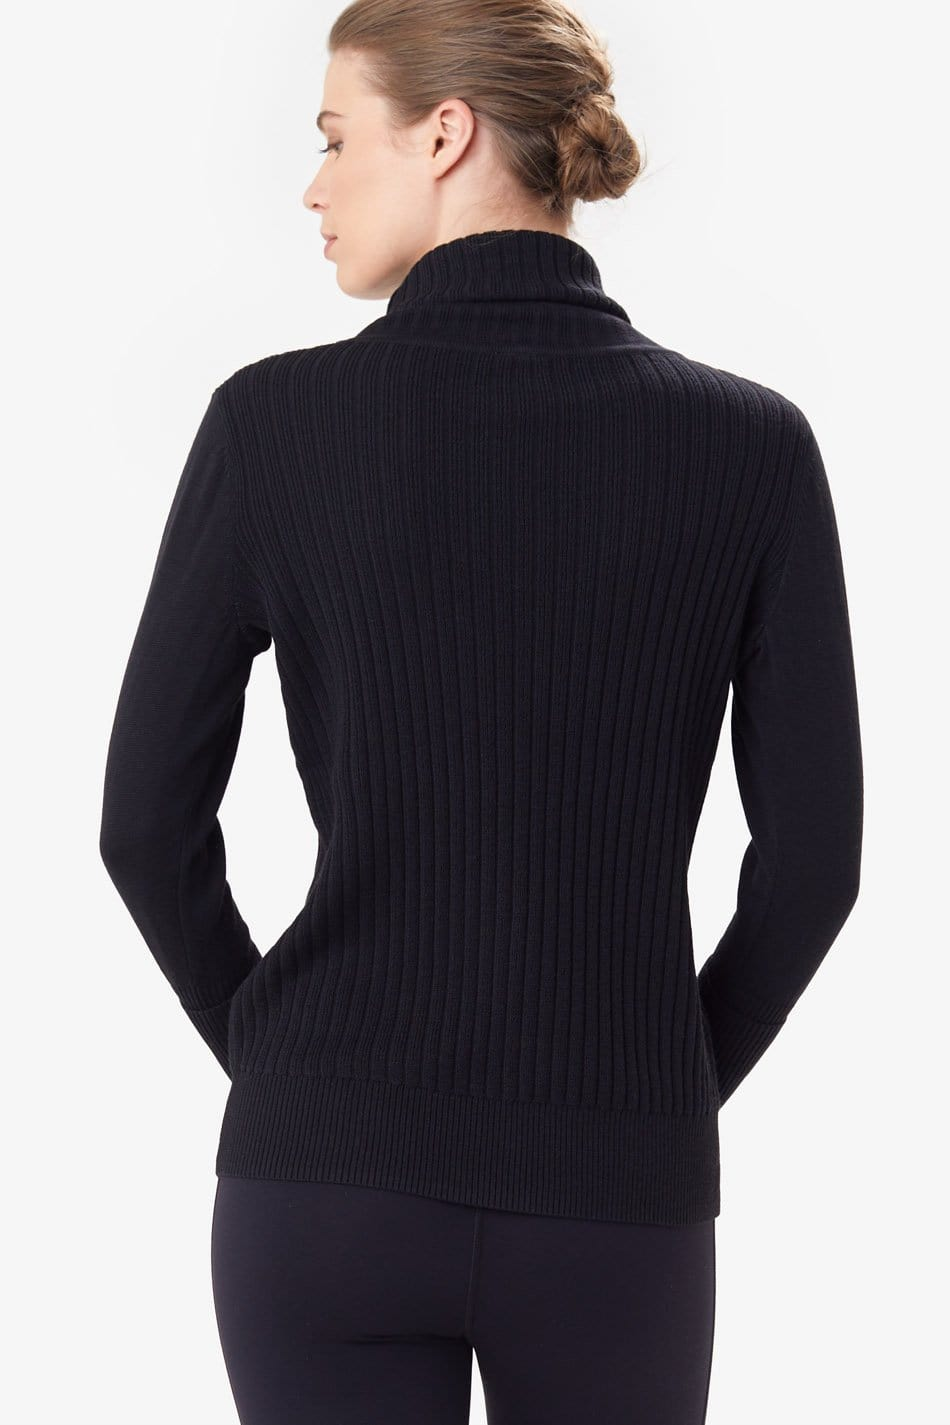 Women's Cozy Turtleneck - NEW